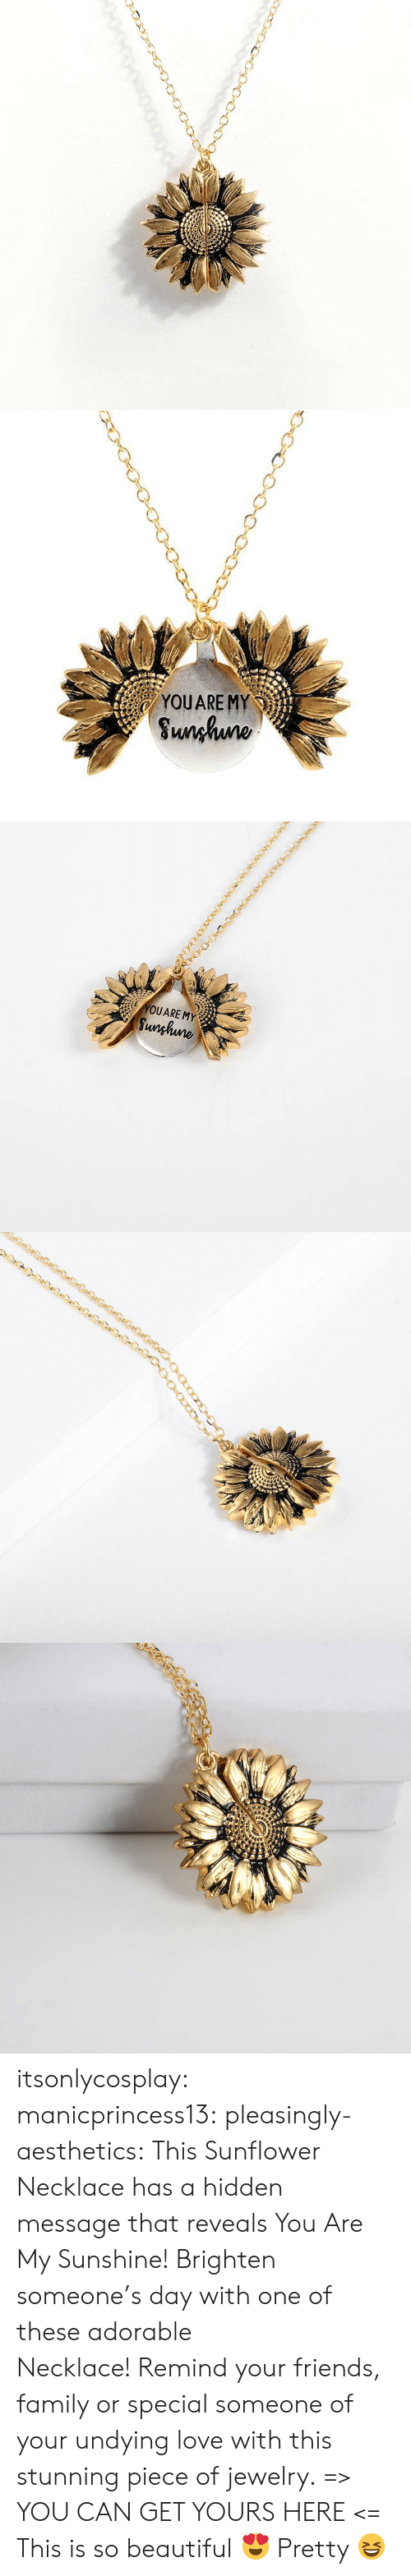 Beautiful, Family, and Friends: YOUARE MY  Sunhuno   YOUARE MY  Sunghune itsonlycosplay: manicprincess13:  pleasingly-aesthetics:  This Sunflower Necklace has a hidden message that reveals You Are My Sunshine! Brighten someone's day with one of these adorable Necklace! Remind your friends, family or special someone of your undying love with this stunning piece of jewelry. => YOU CAN GET YOURS HERE <=   This is so beautiful 😍    Pretty 😆